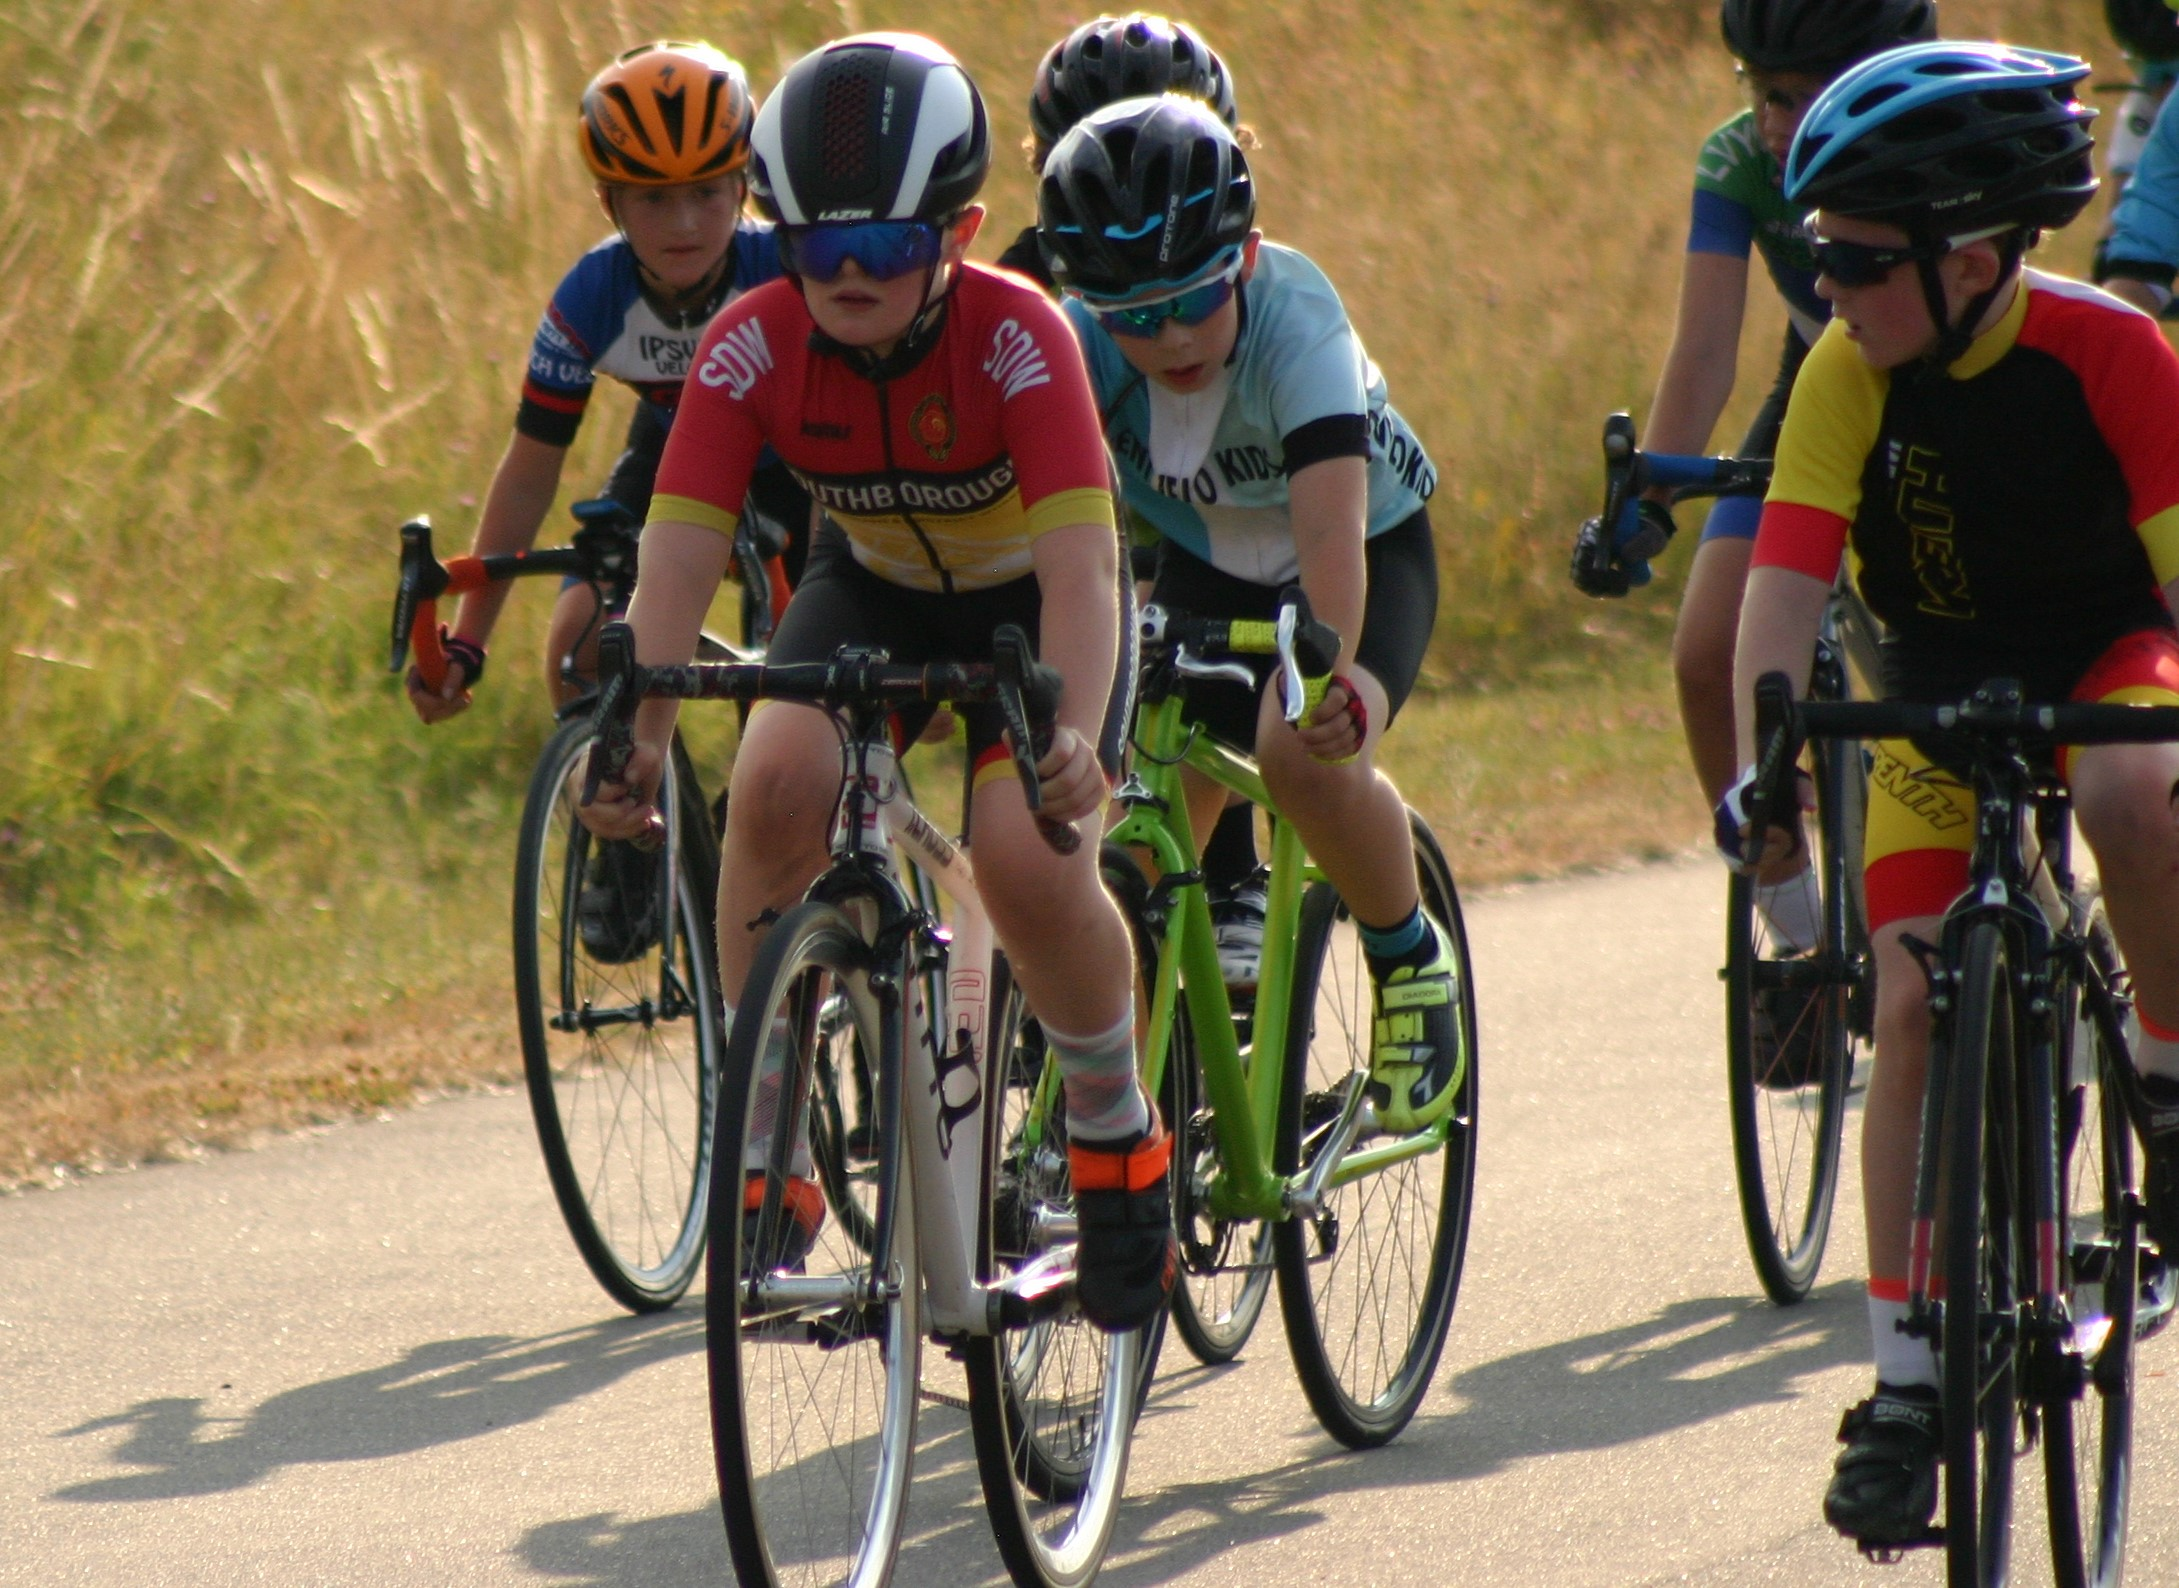 Abbey hanging for the bunch sprint at the Cyclopark championships in 2018, coming second overall